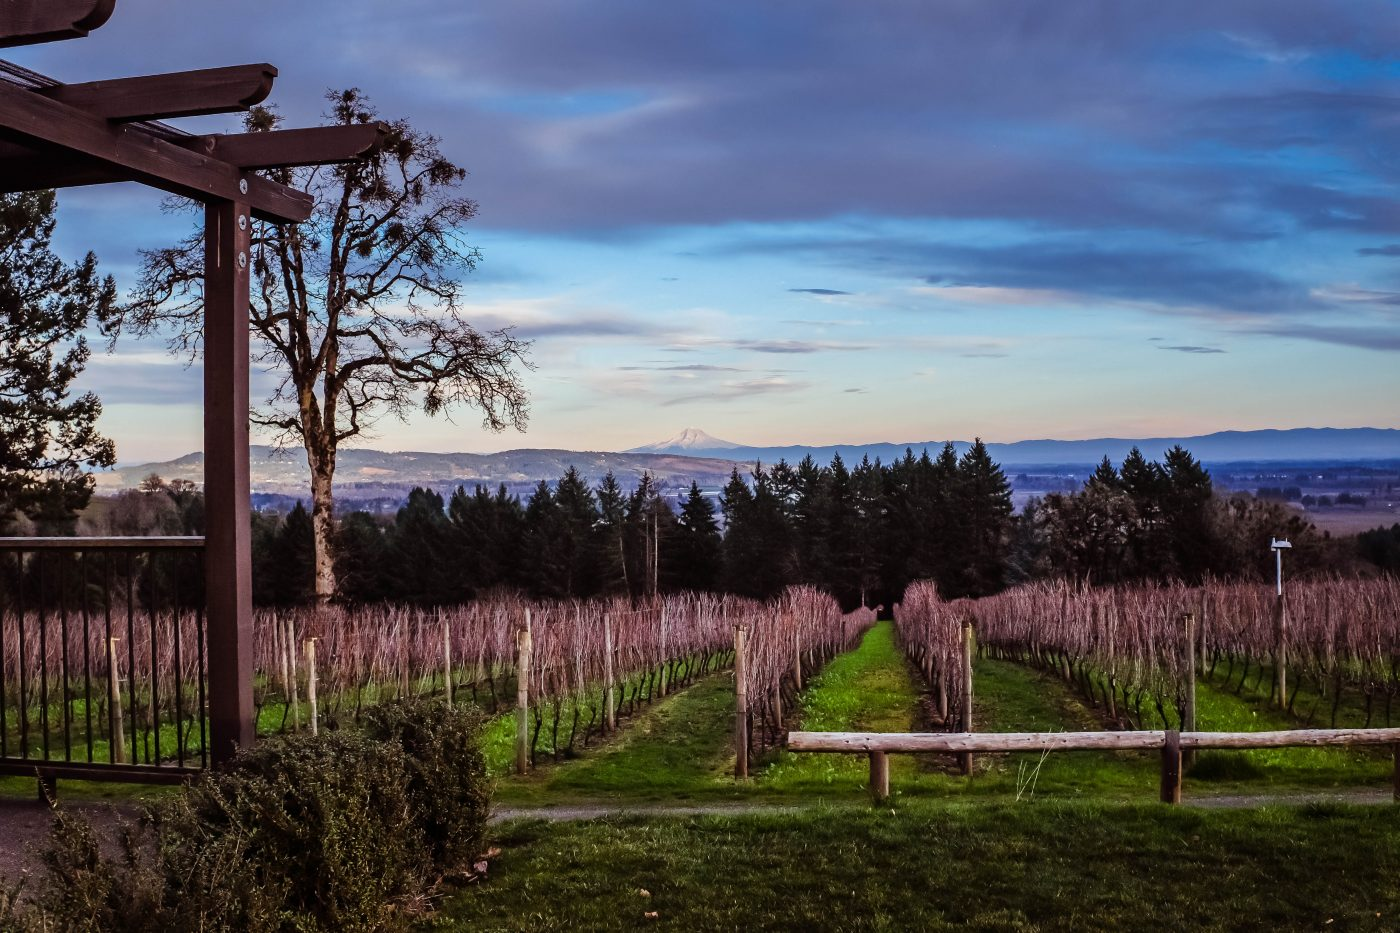 Views of the vineyards in the Willamette Valley